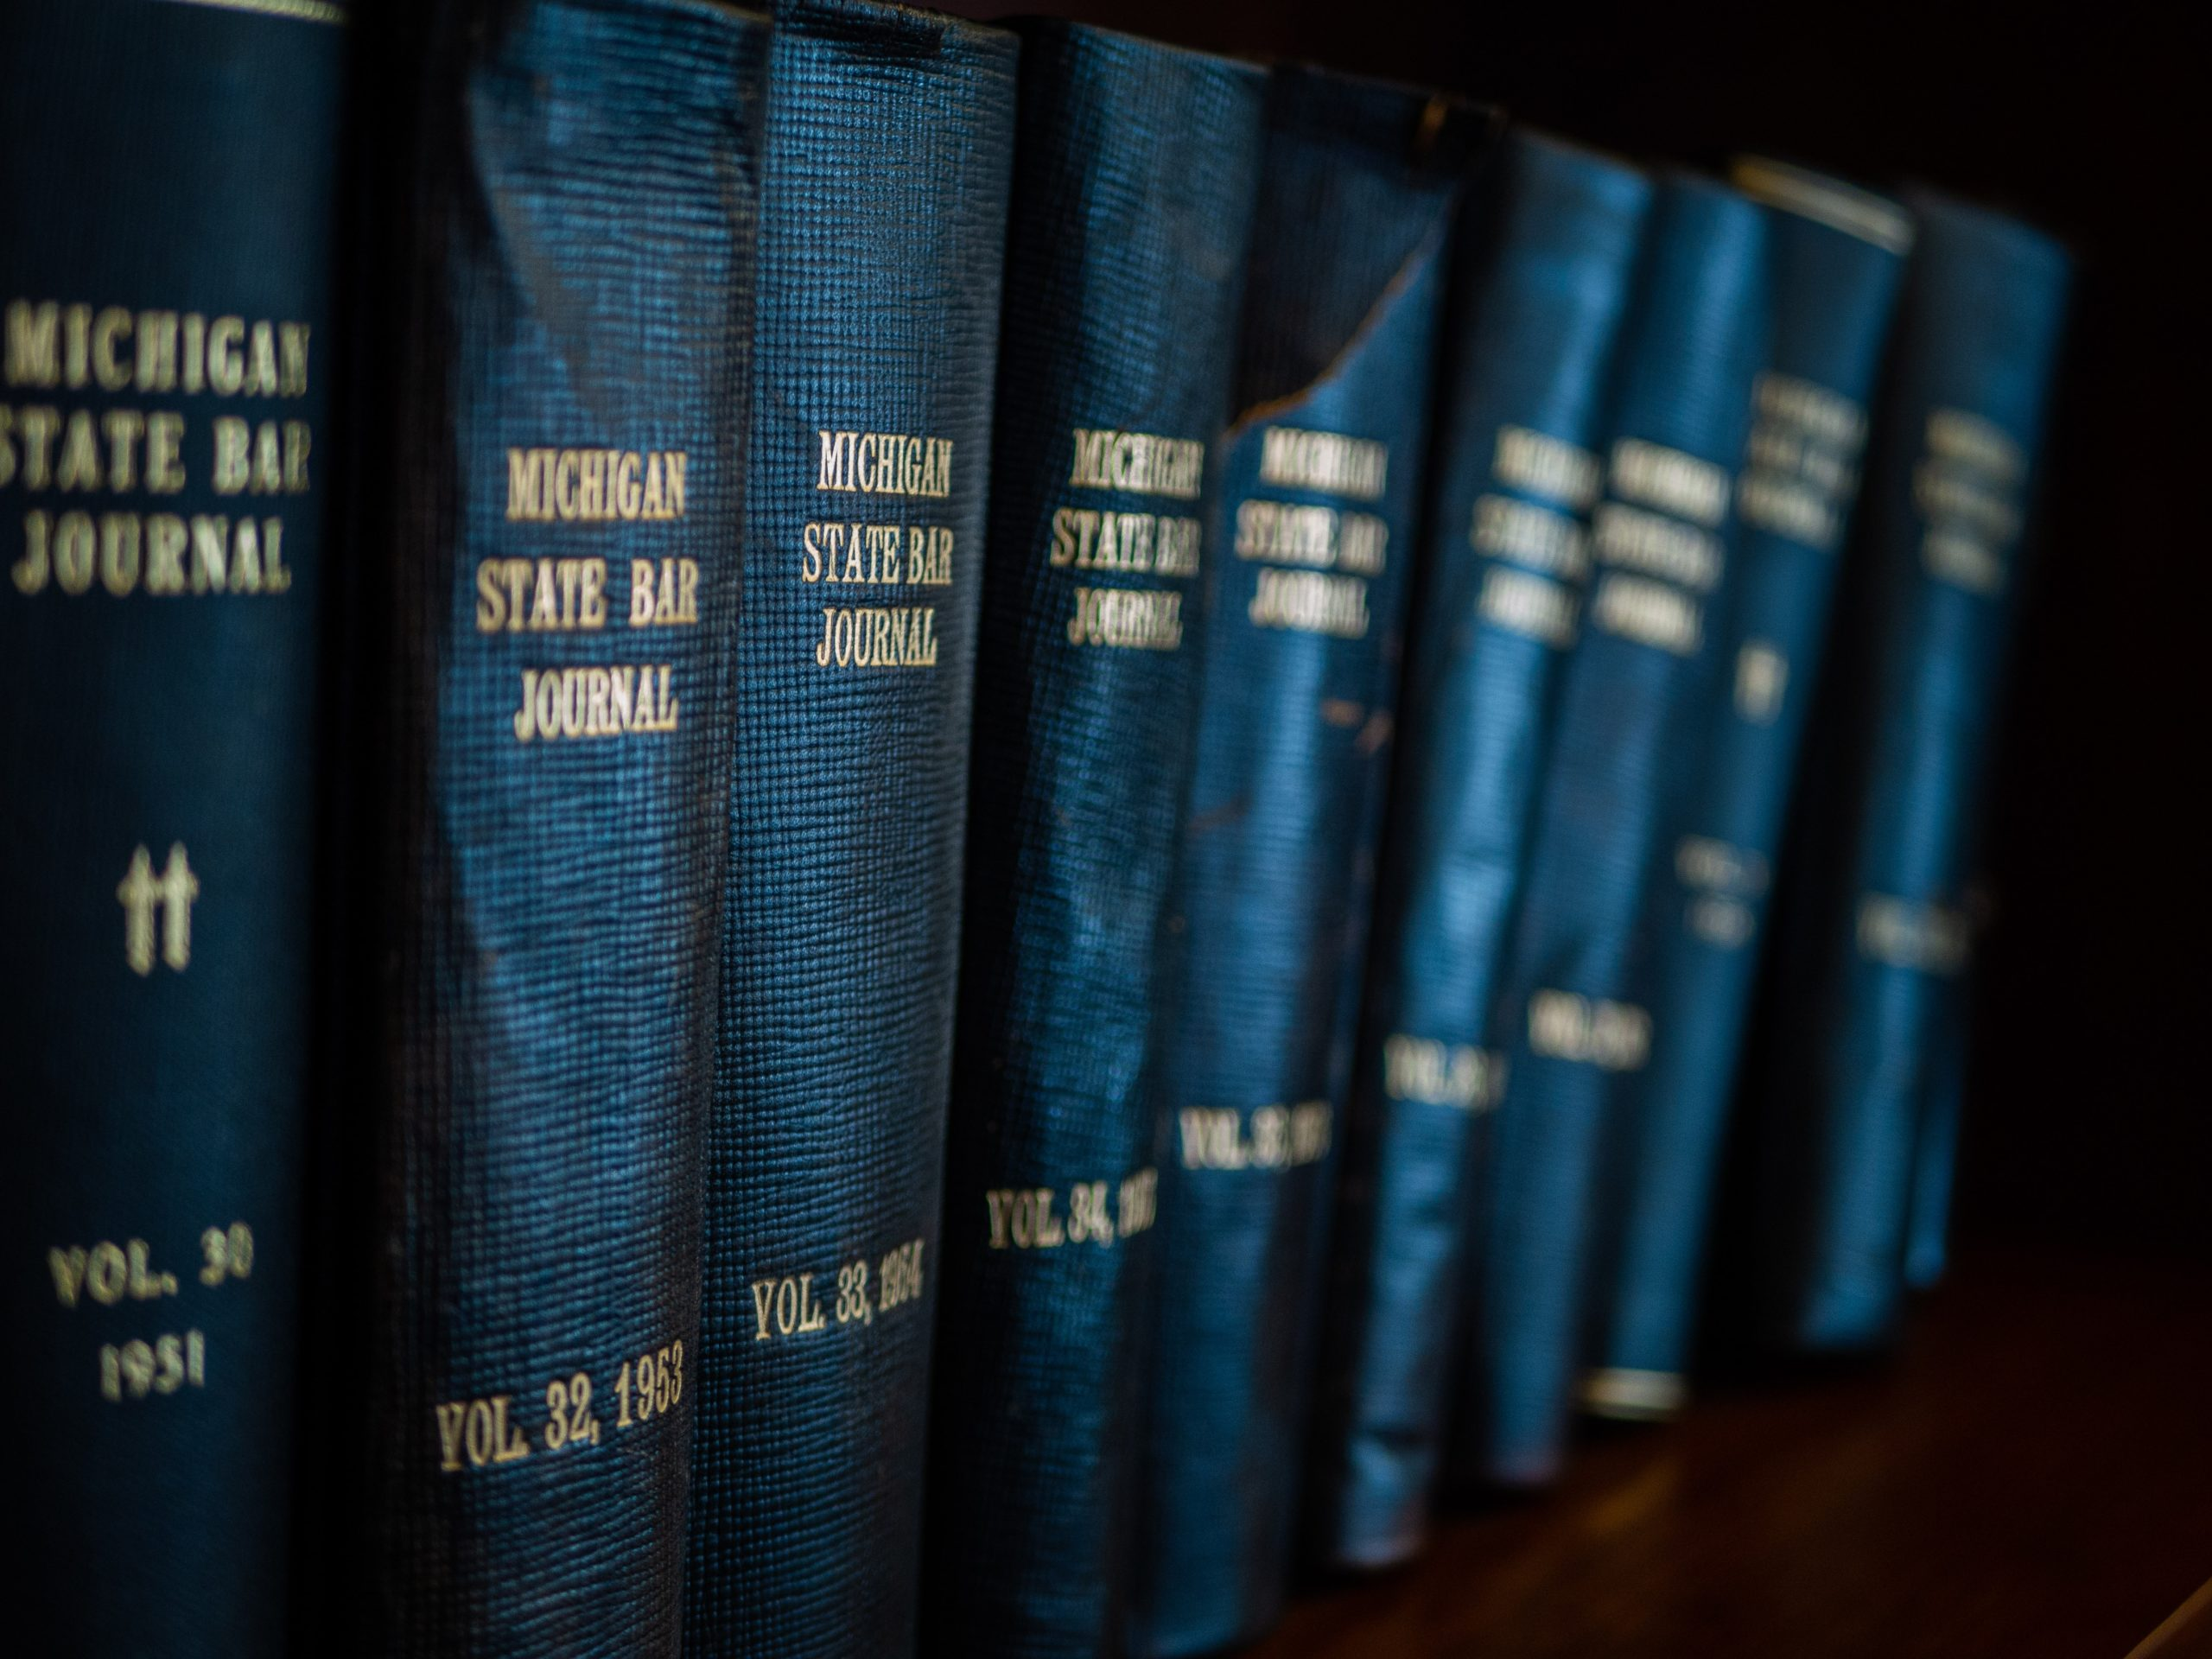 Image of blue law books to show legal hiring process